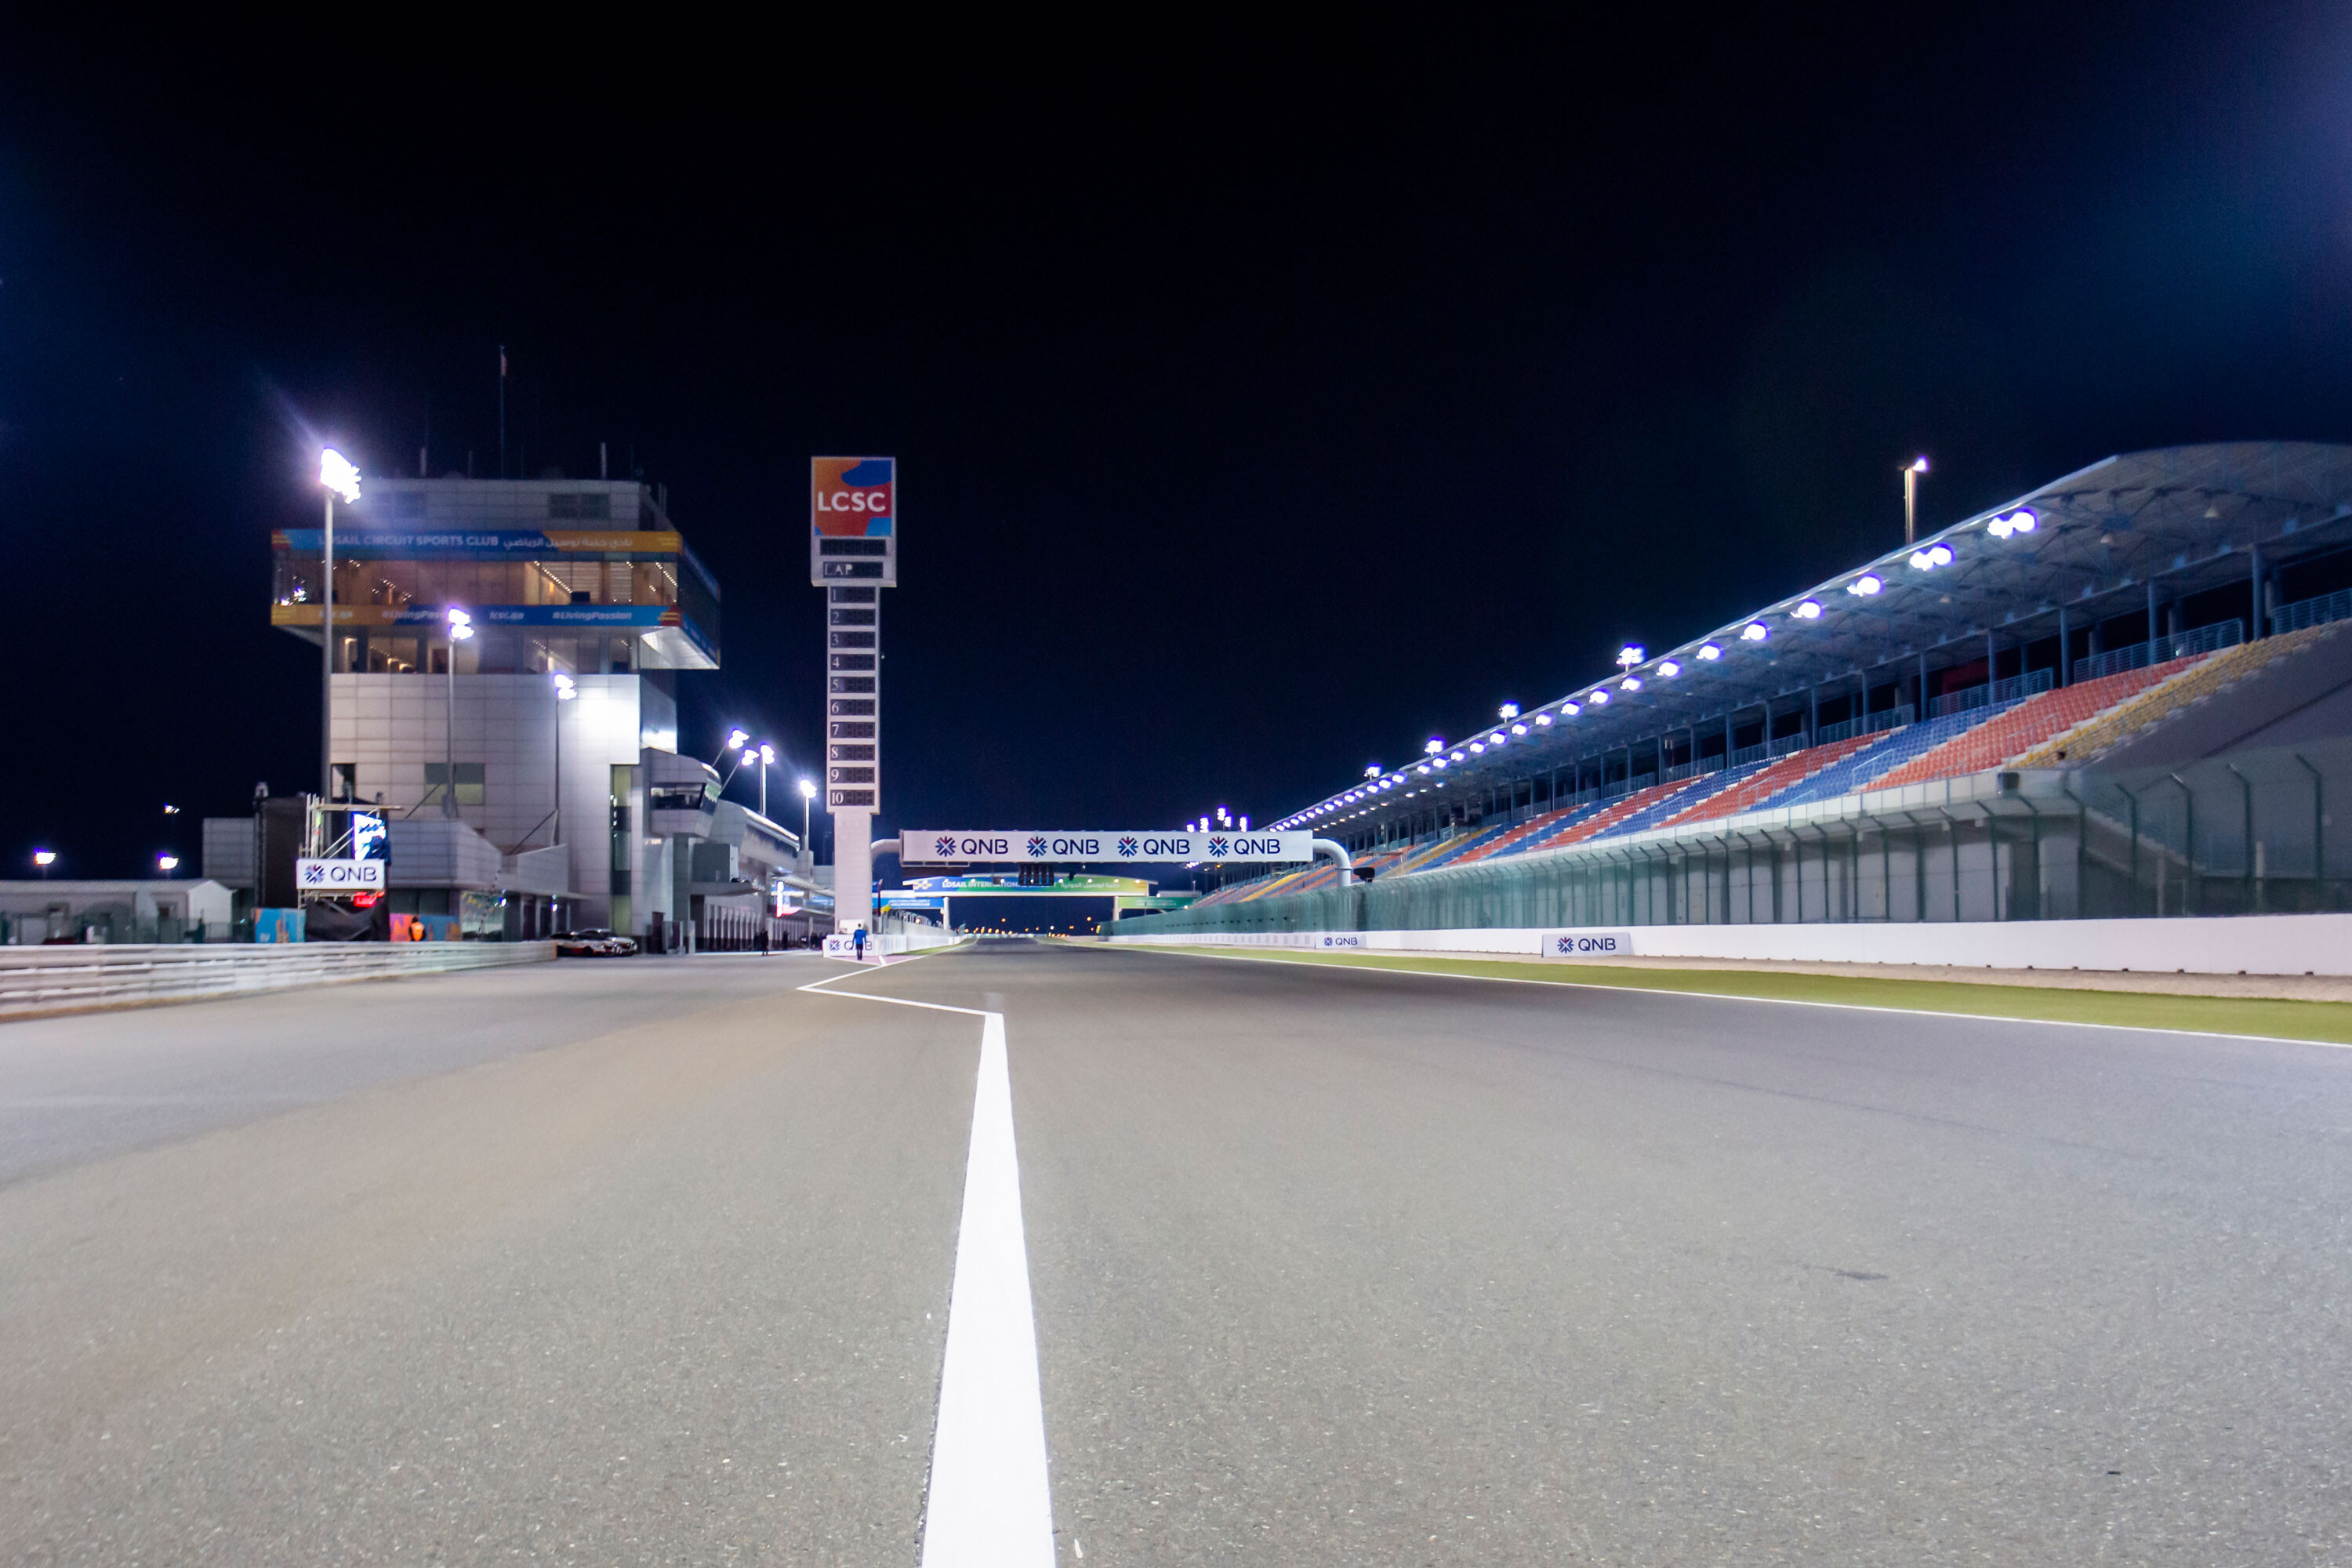 Qatar added to 2021 F1 calendar as Gulf state secures 10-year deal to host races in country from 2023